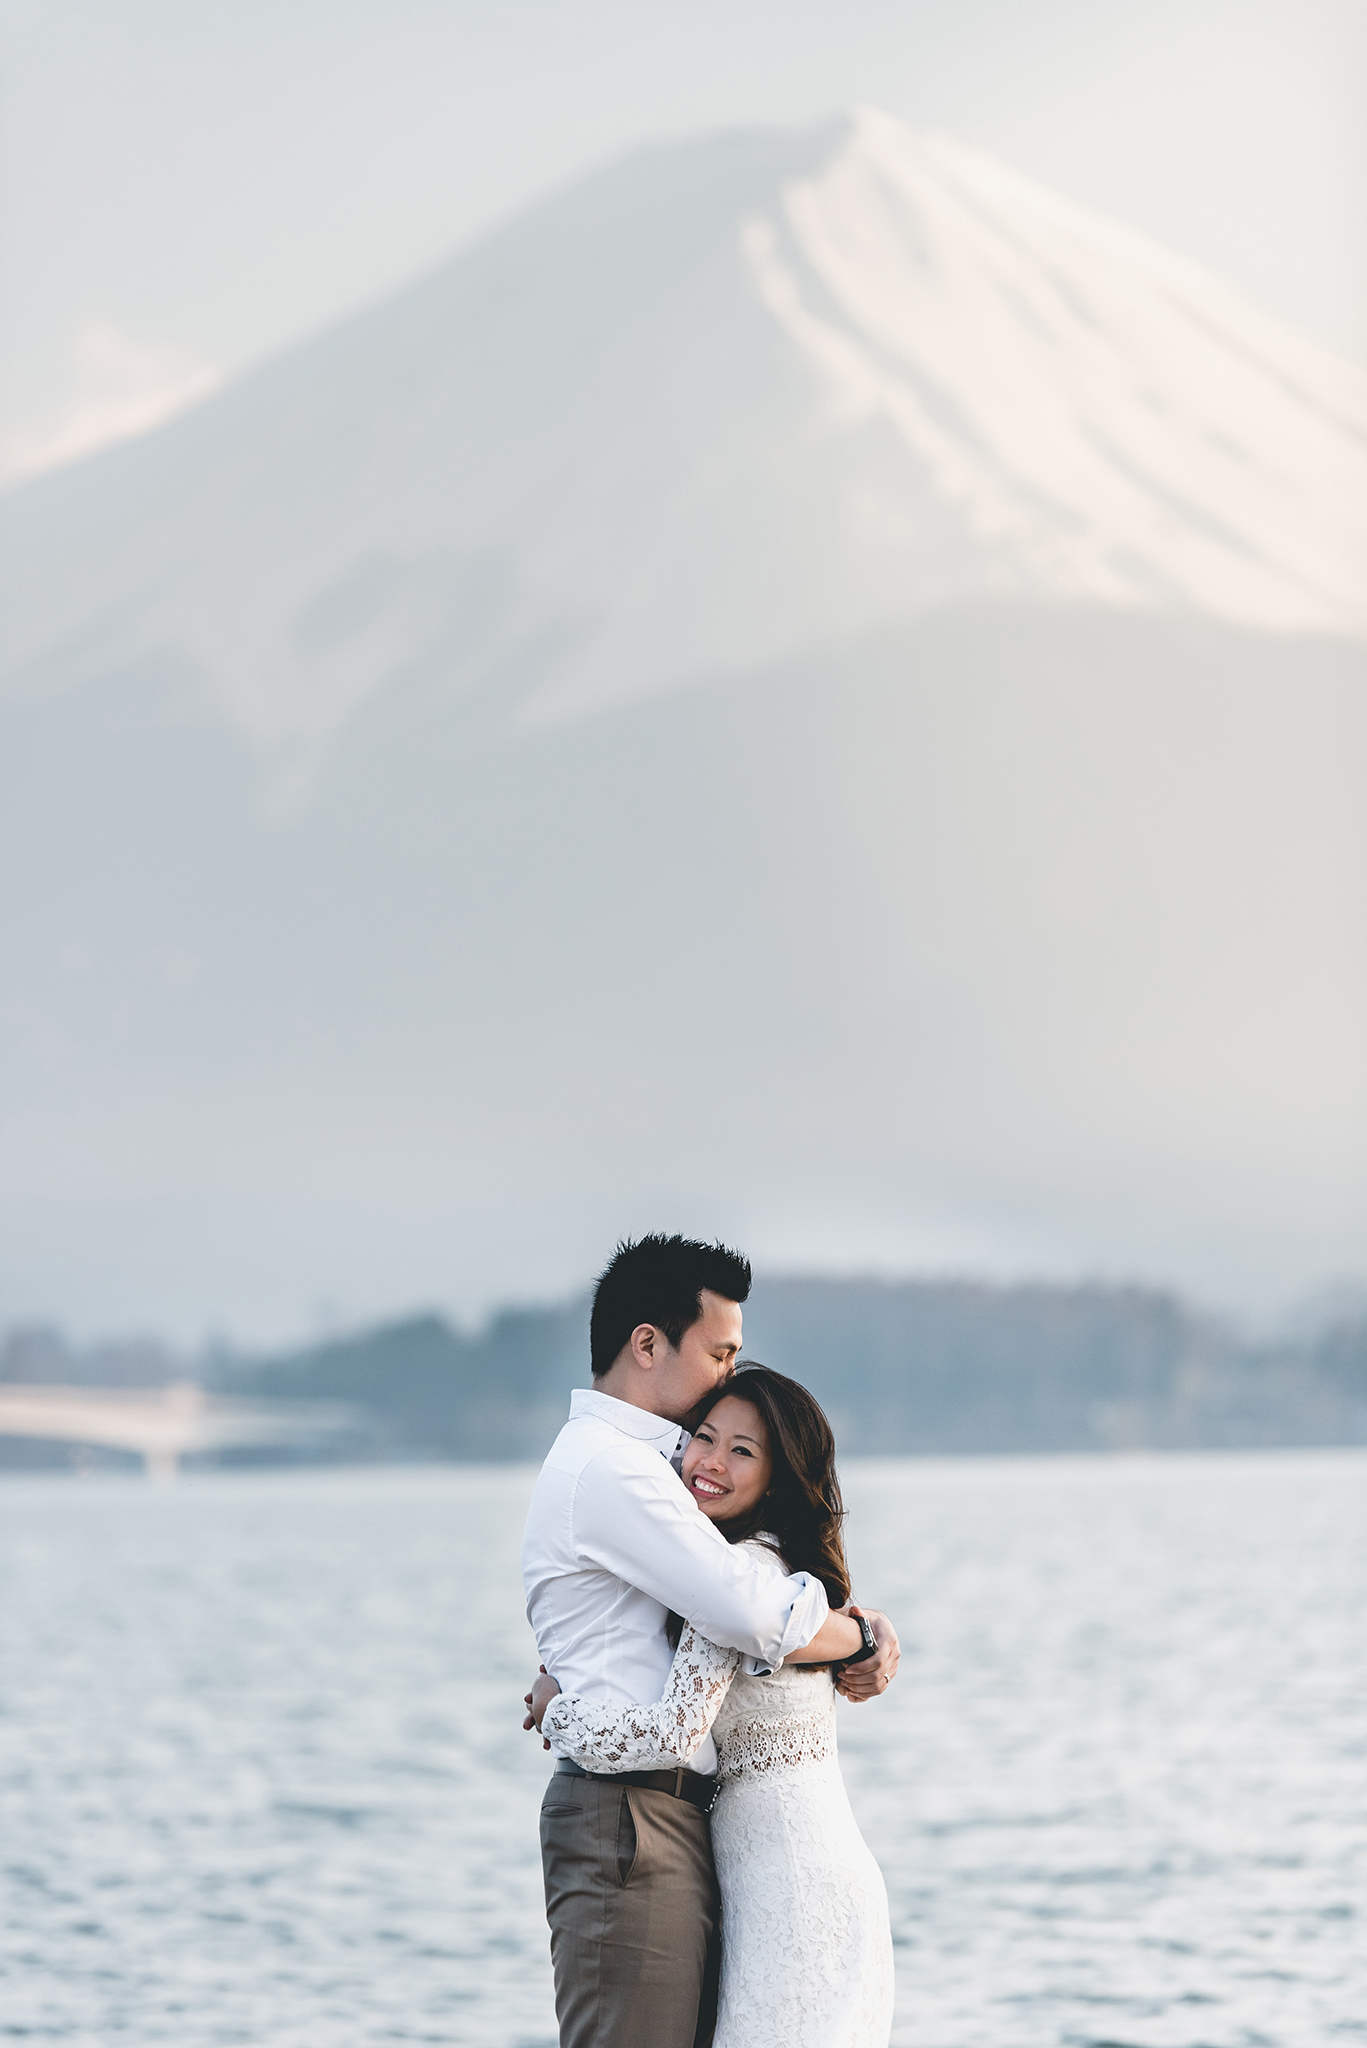 Japan Prewedding 43.JPG